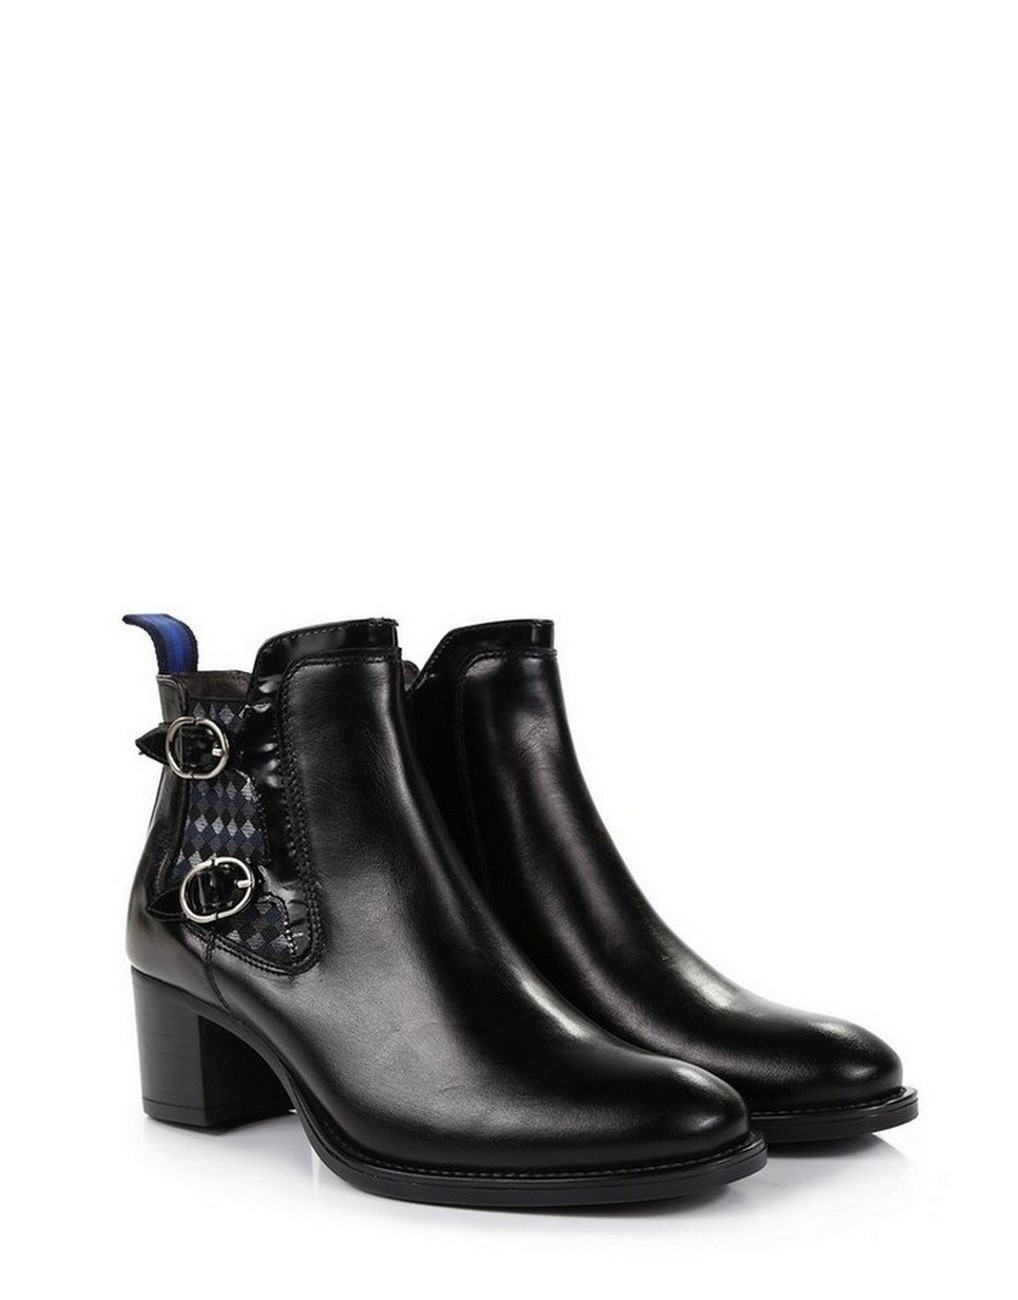 d446667d962 Welligogs Arya Black Leather Ankle Boots